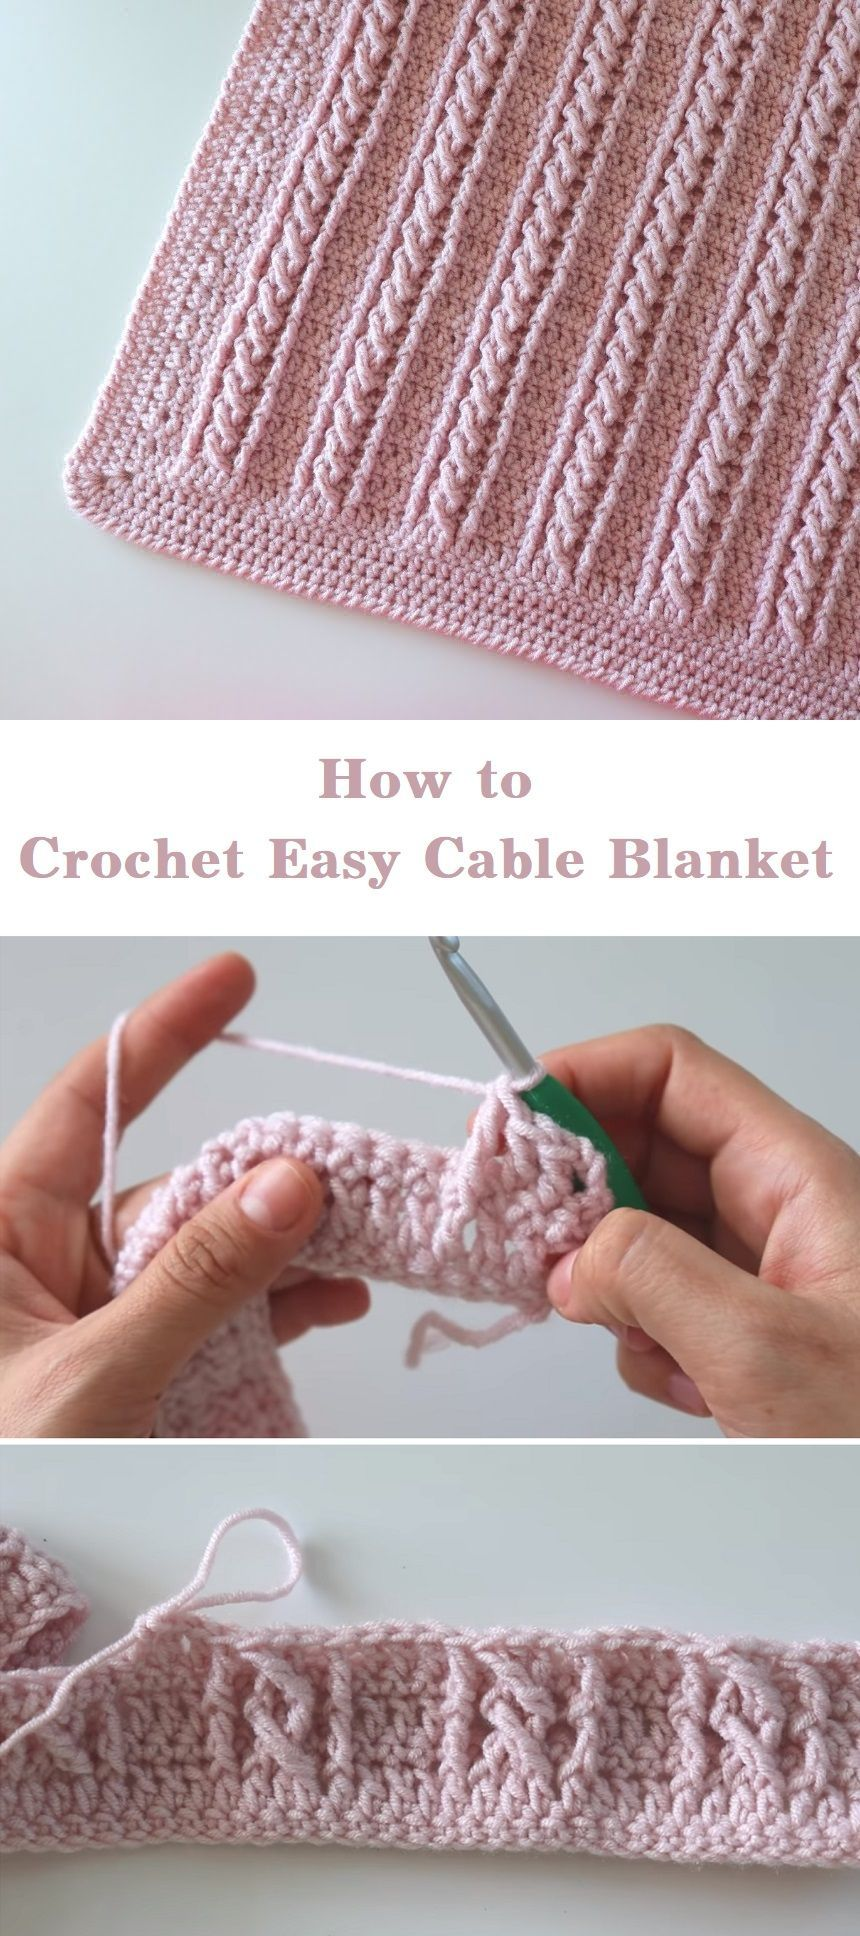 Crochet Easy Beginner Cable Blanket - Design Peak #beginner #Blanket #Cable #Crochet #Design #Easy #Peak #crochetstitchespatterns